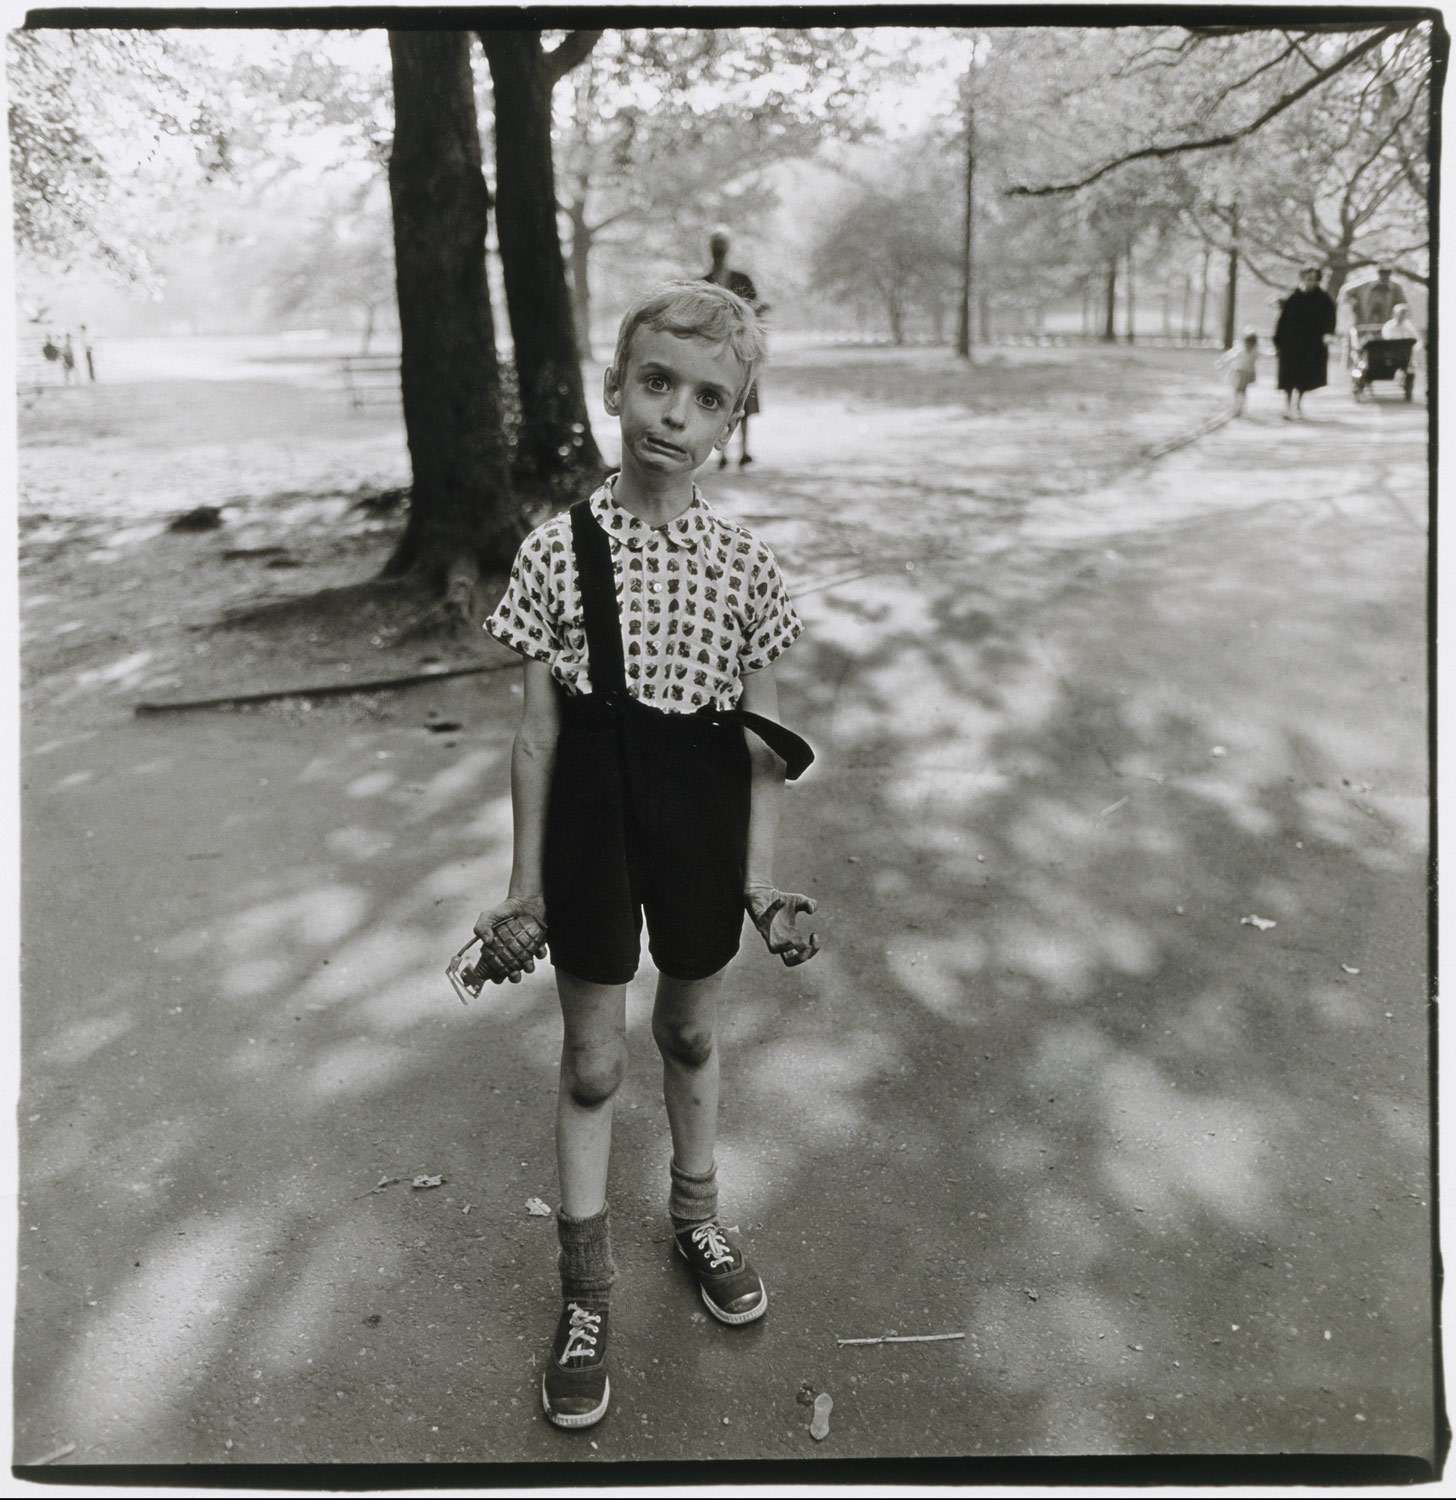 "©1968 estate of Diane Arbus, LLC, Child with a toy hand grenade in Central Park, N.Y.C. 1962   ""There's a quality of legend about freaks. Like a person in a fairy tale who stops you and demands that you answer a riddle. Most people go through life dreading they'll have a traumatic experience. Freaks were born with their trauma. They've already passed their test in life. They're aristocrats."" -Diane Arbus"